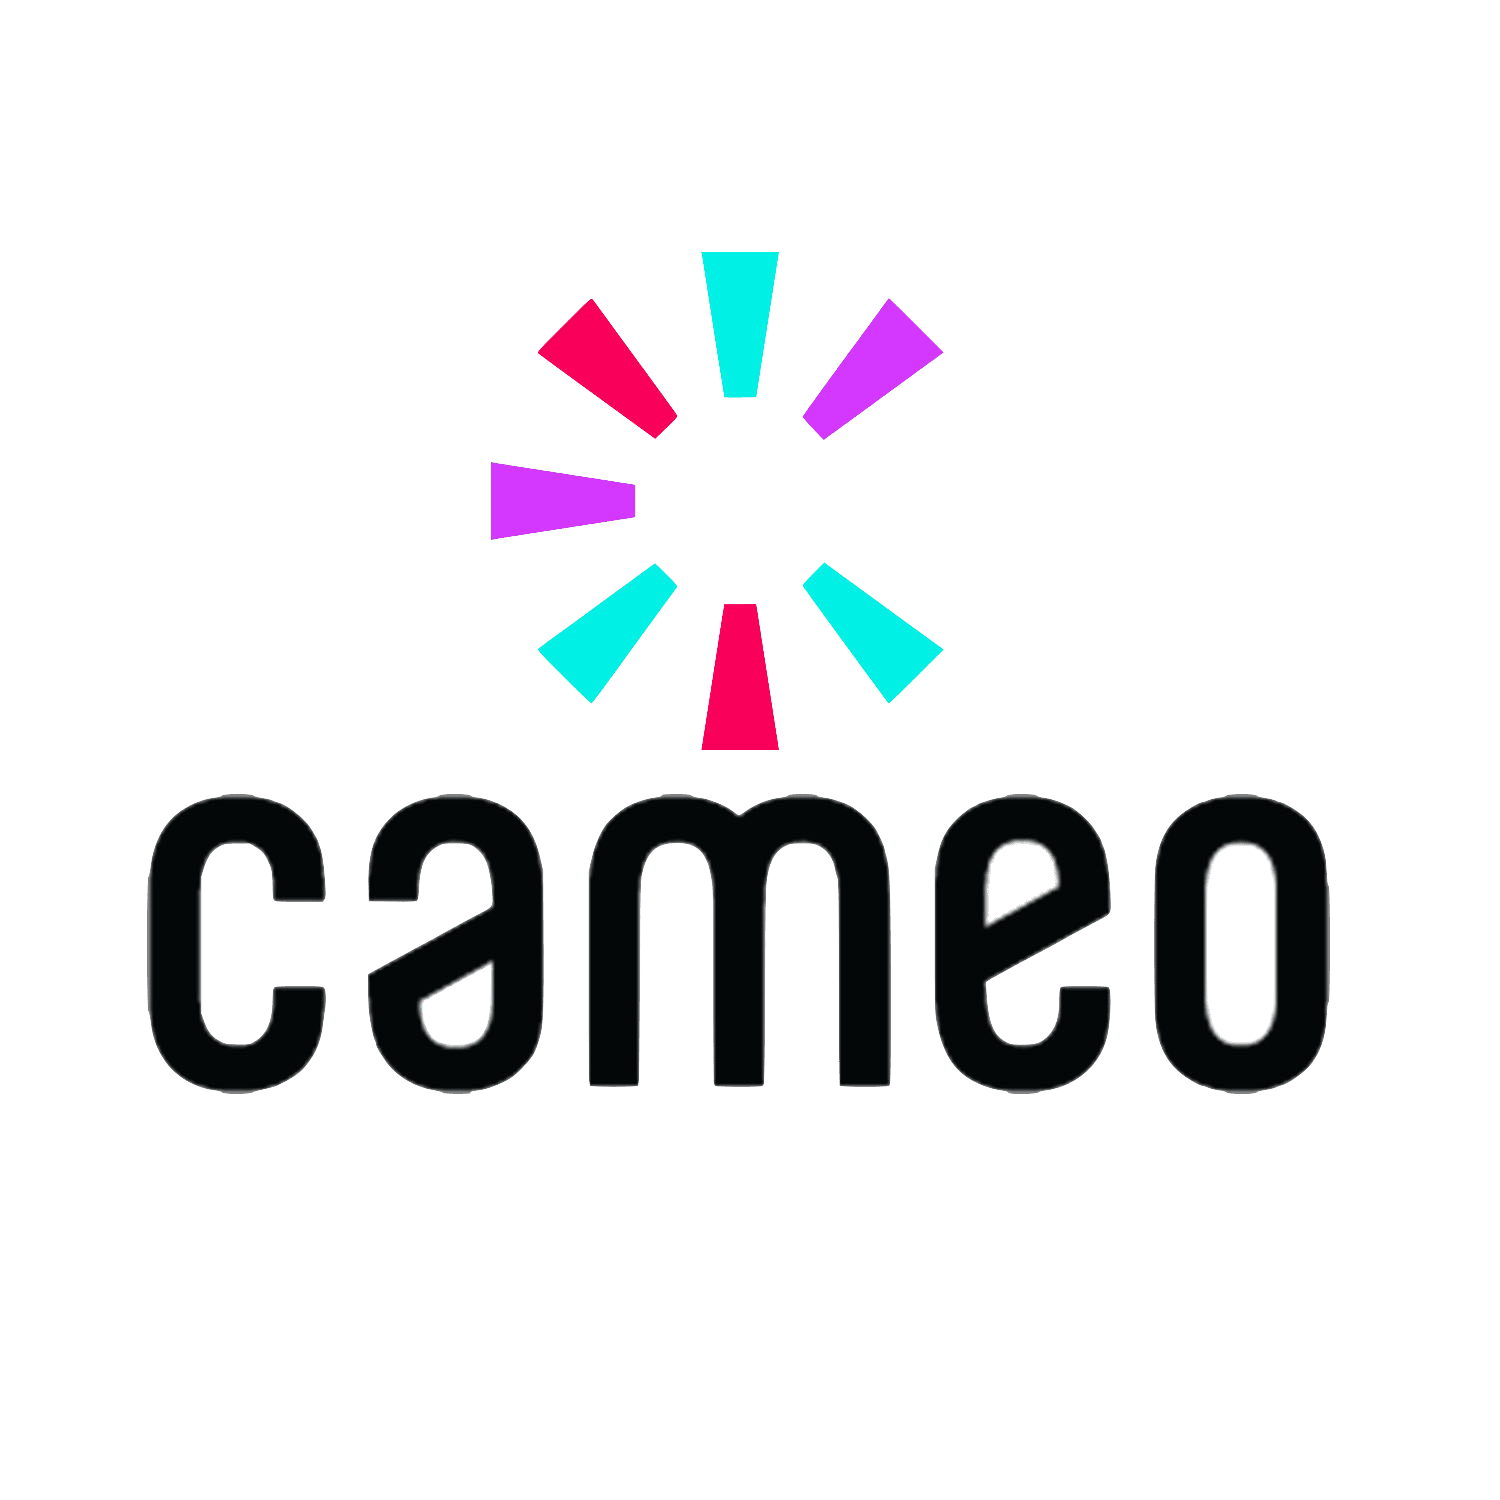 A Shoutout from a Musician on Cameo